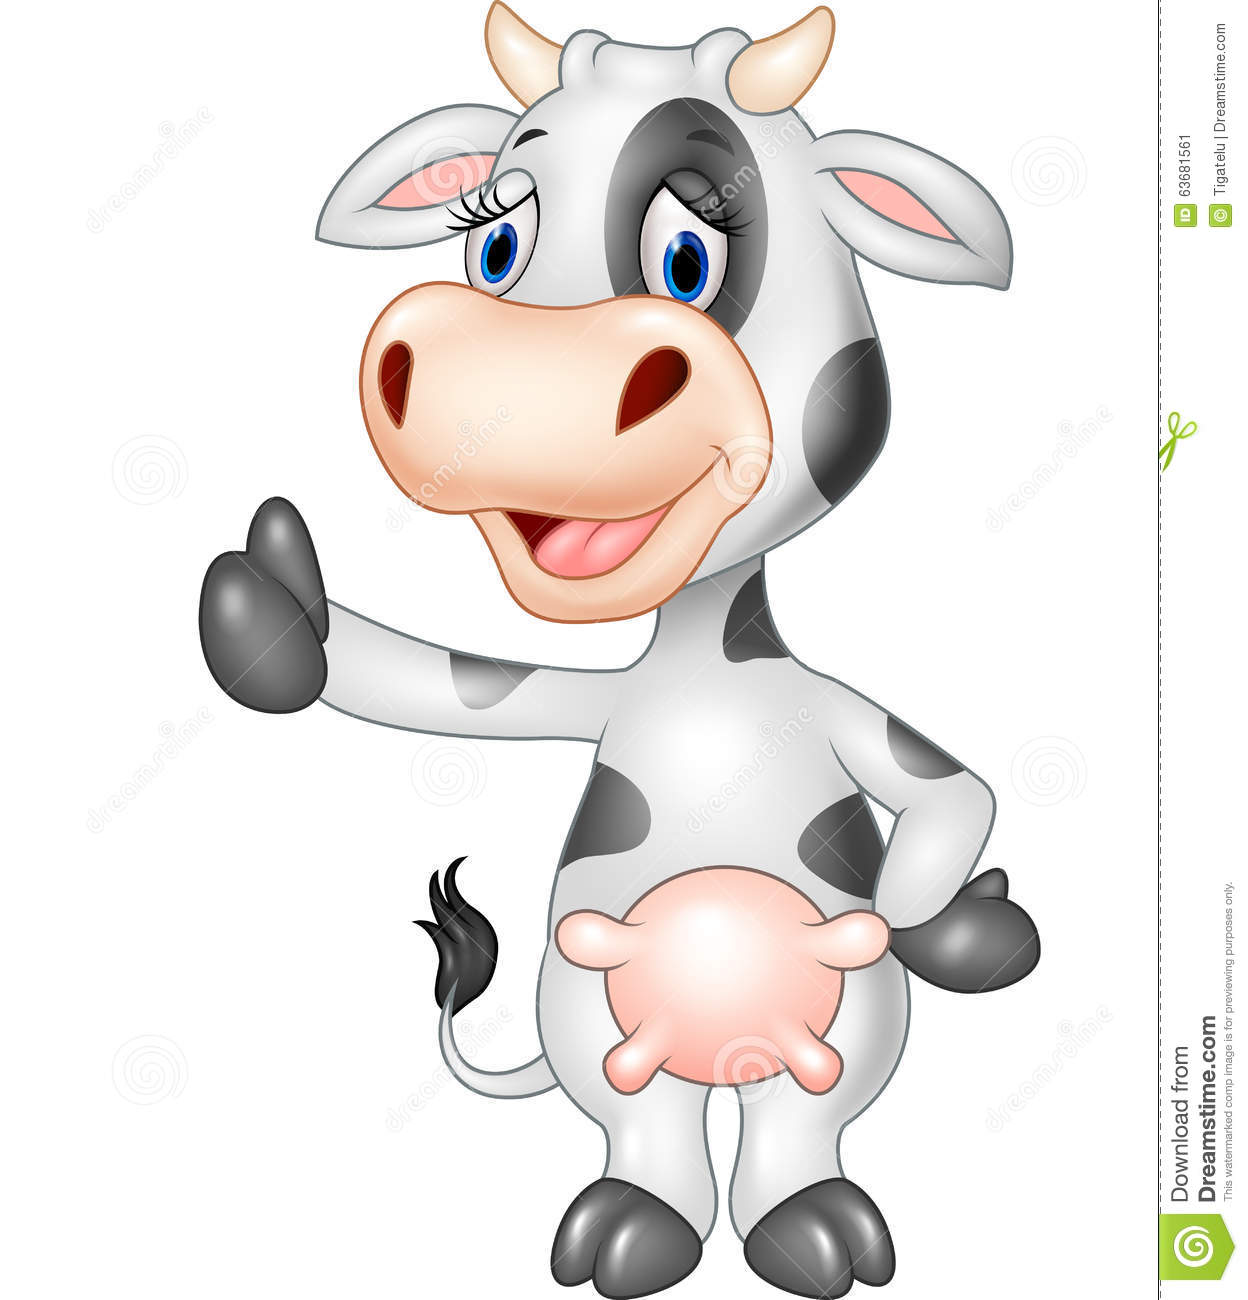 Cartoon Funny Cow Giving Thumb Up Isolated On Transparent